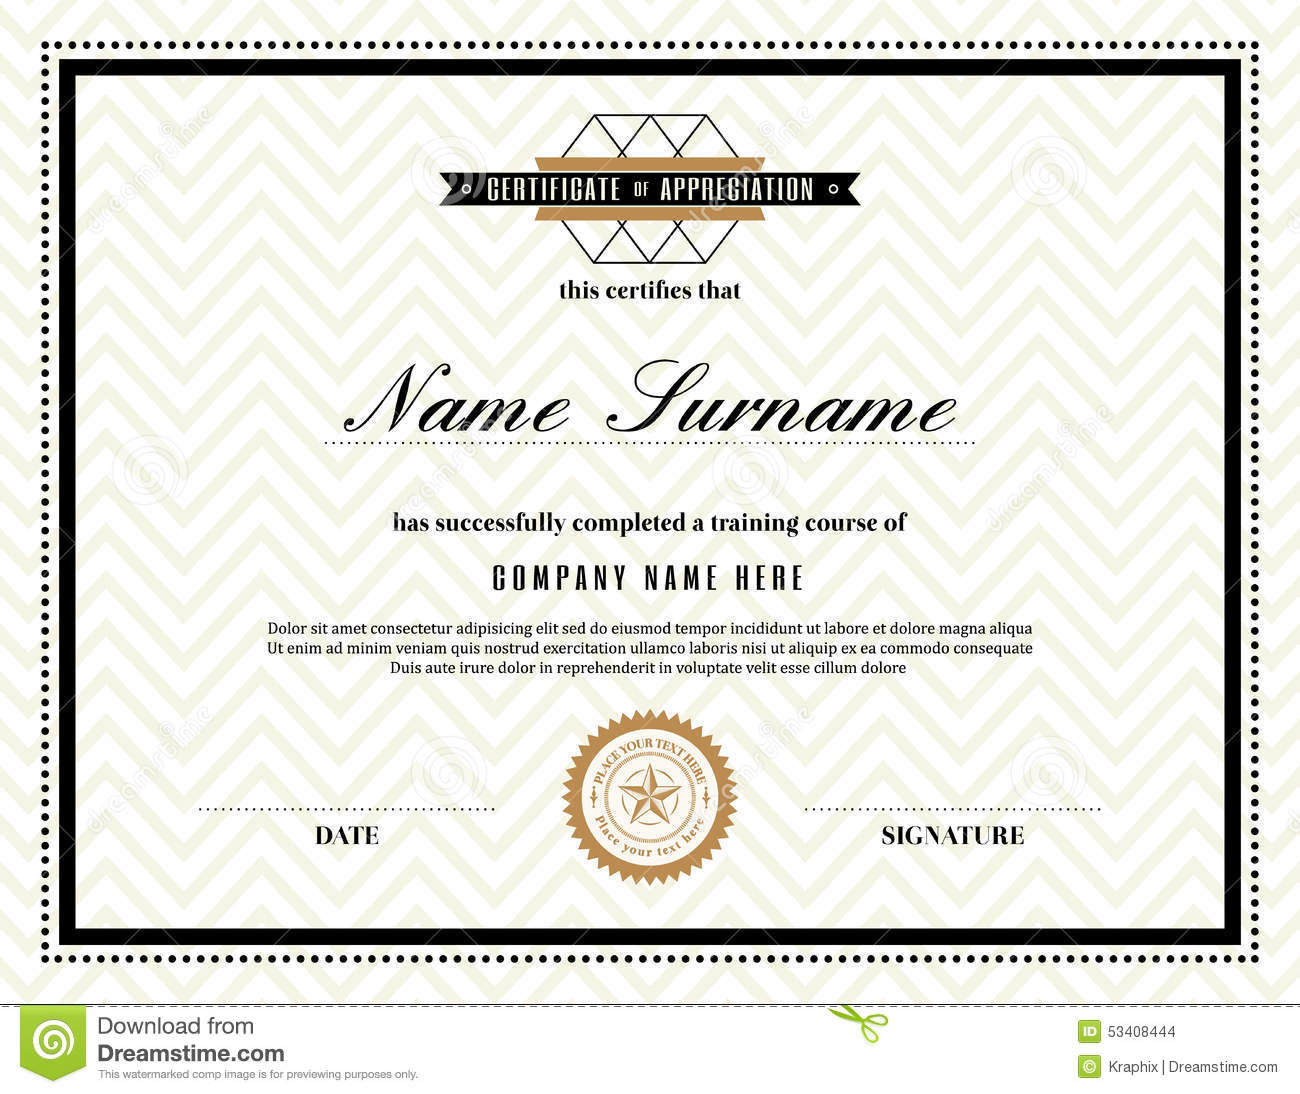 photo about Free Printable Certificates of Appreciation called Retro Body Certification Of Appreciation Template Inventory